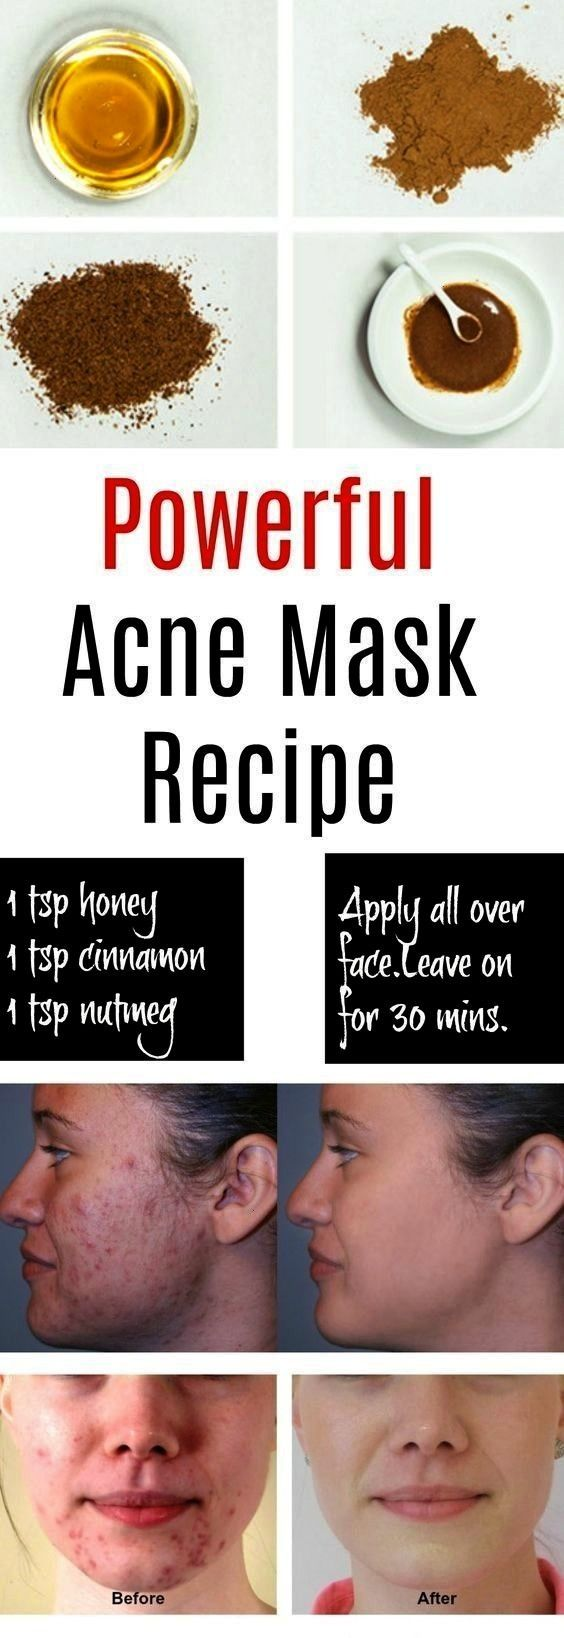 Remedies for Pimples and Blackheads for Oily Skin  best home for acne overnight  homemade acne mask  how to get rid of pimples and blackheads overnight skincareHome Remed...